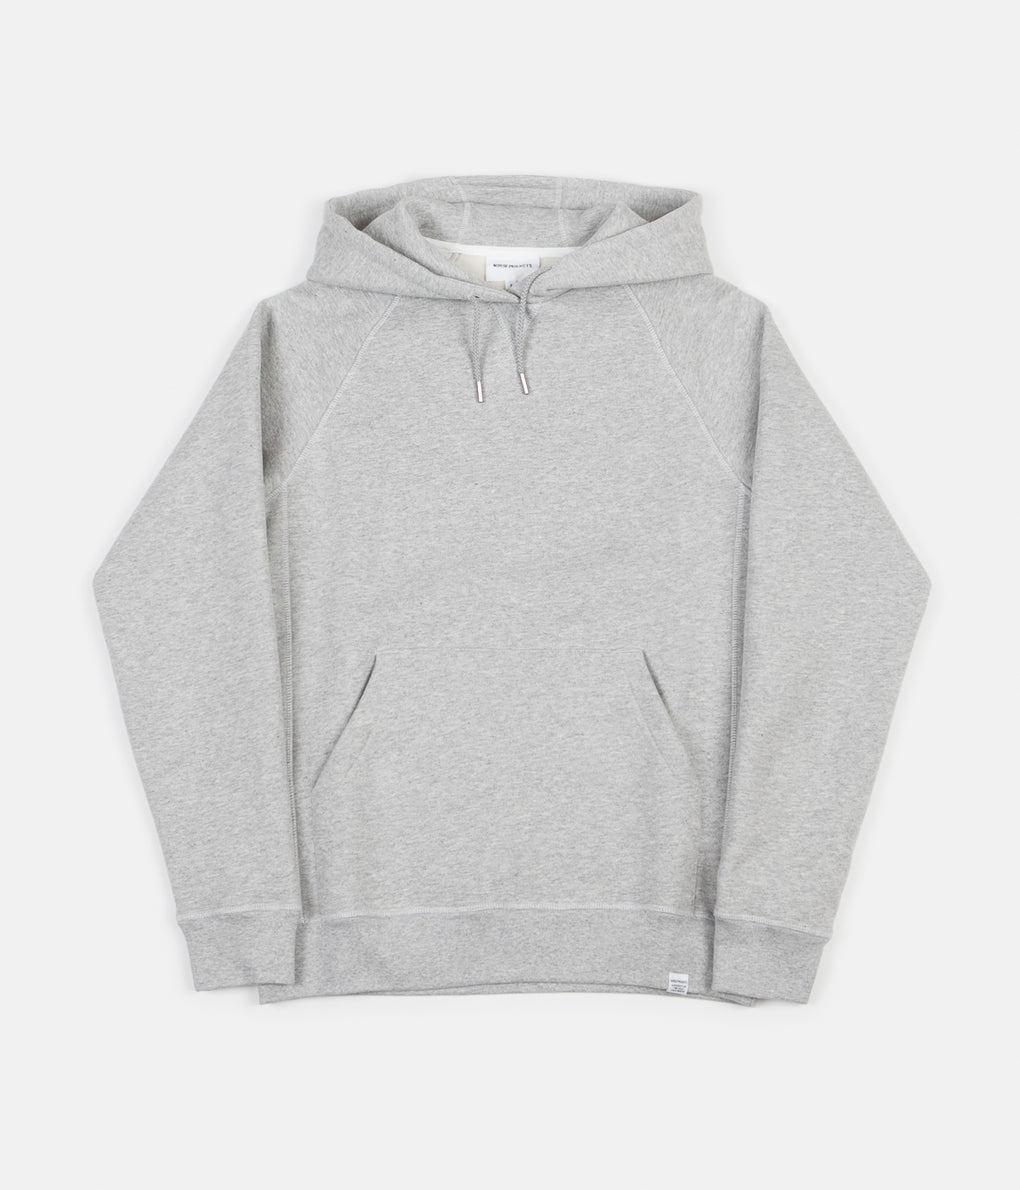 Norse Projects Ketel Classic Hoodie - Light Grey Melange